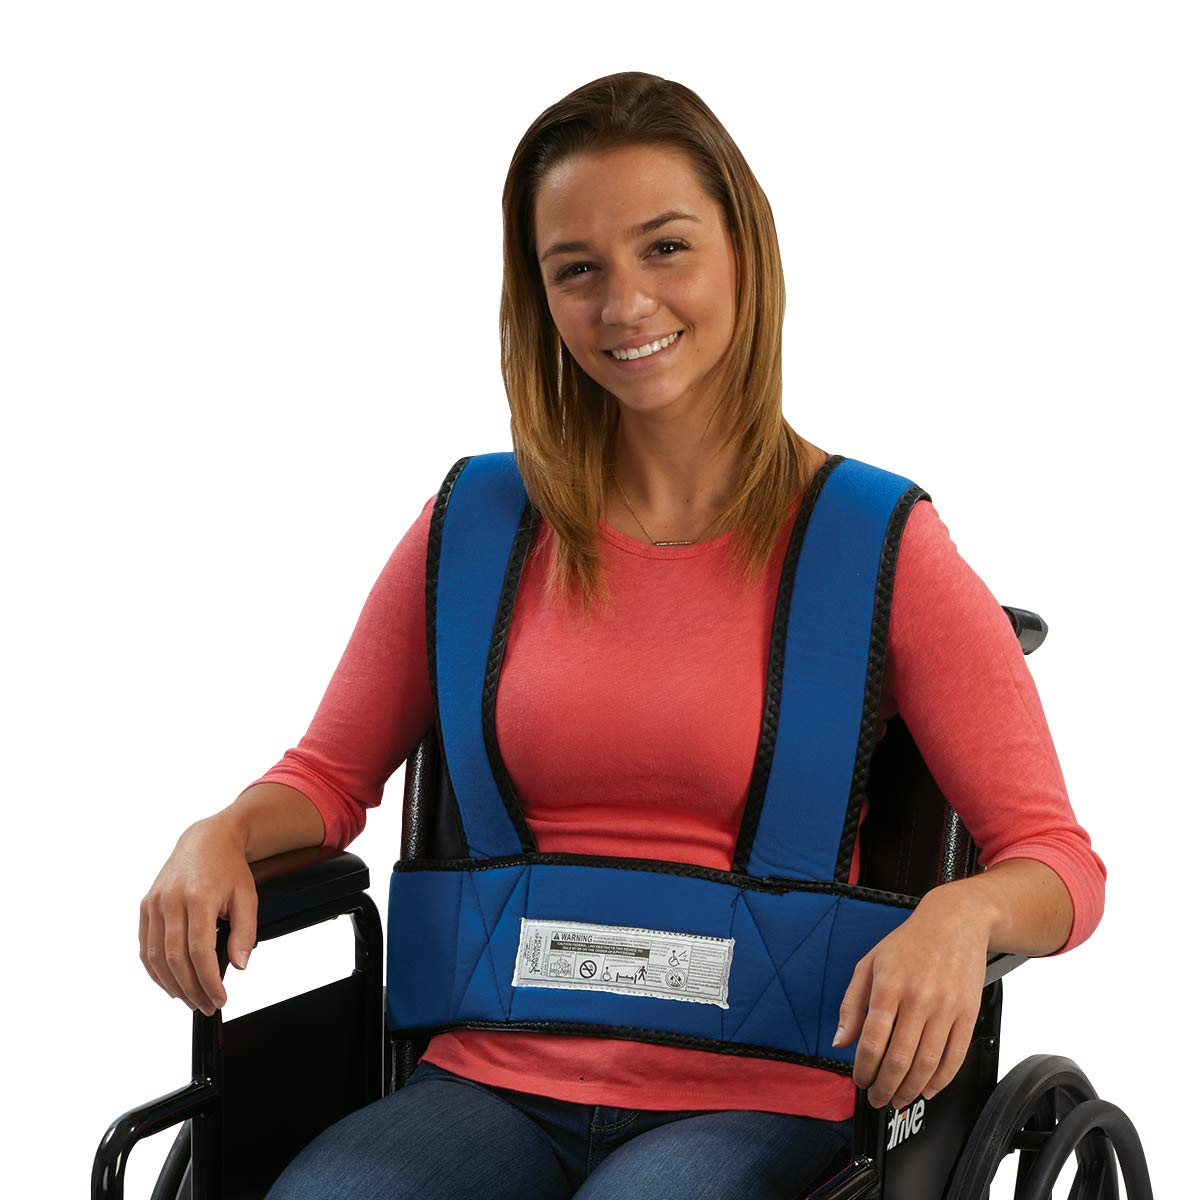 Sammons Preston Adult Foam Torso Support, Wheelchair Straps Hold User Upright to Promote Posture Alignment, Adjustable Chest & Waist Band Prevent Tilting or Falling of Elderly, Disabled, Handicapped by Sammons Preston